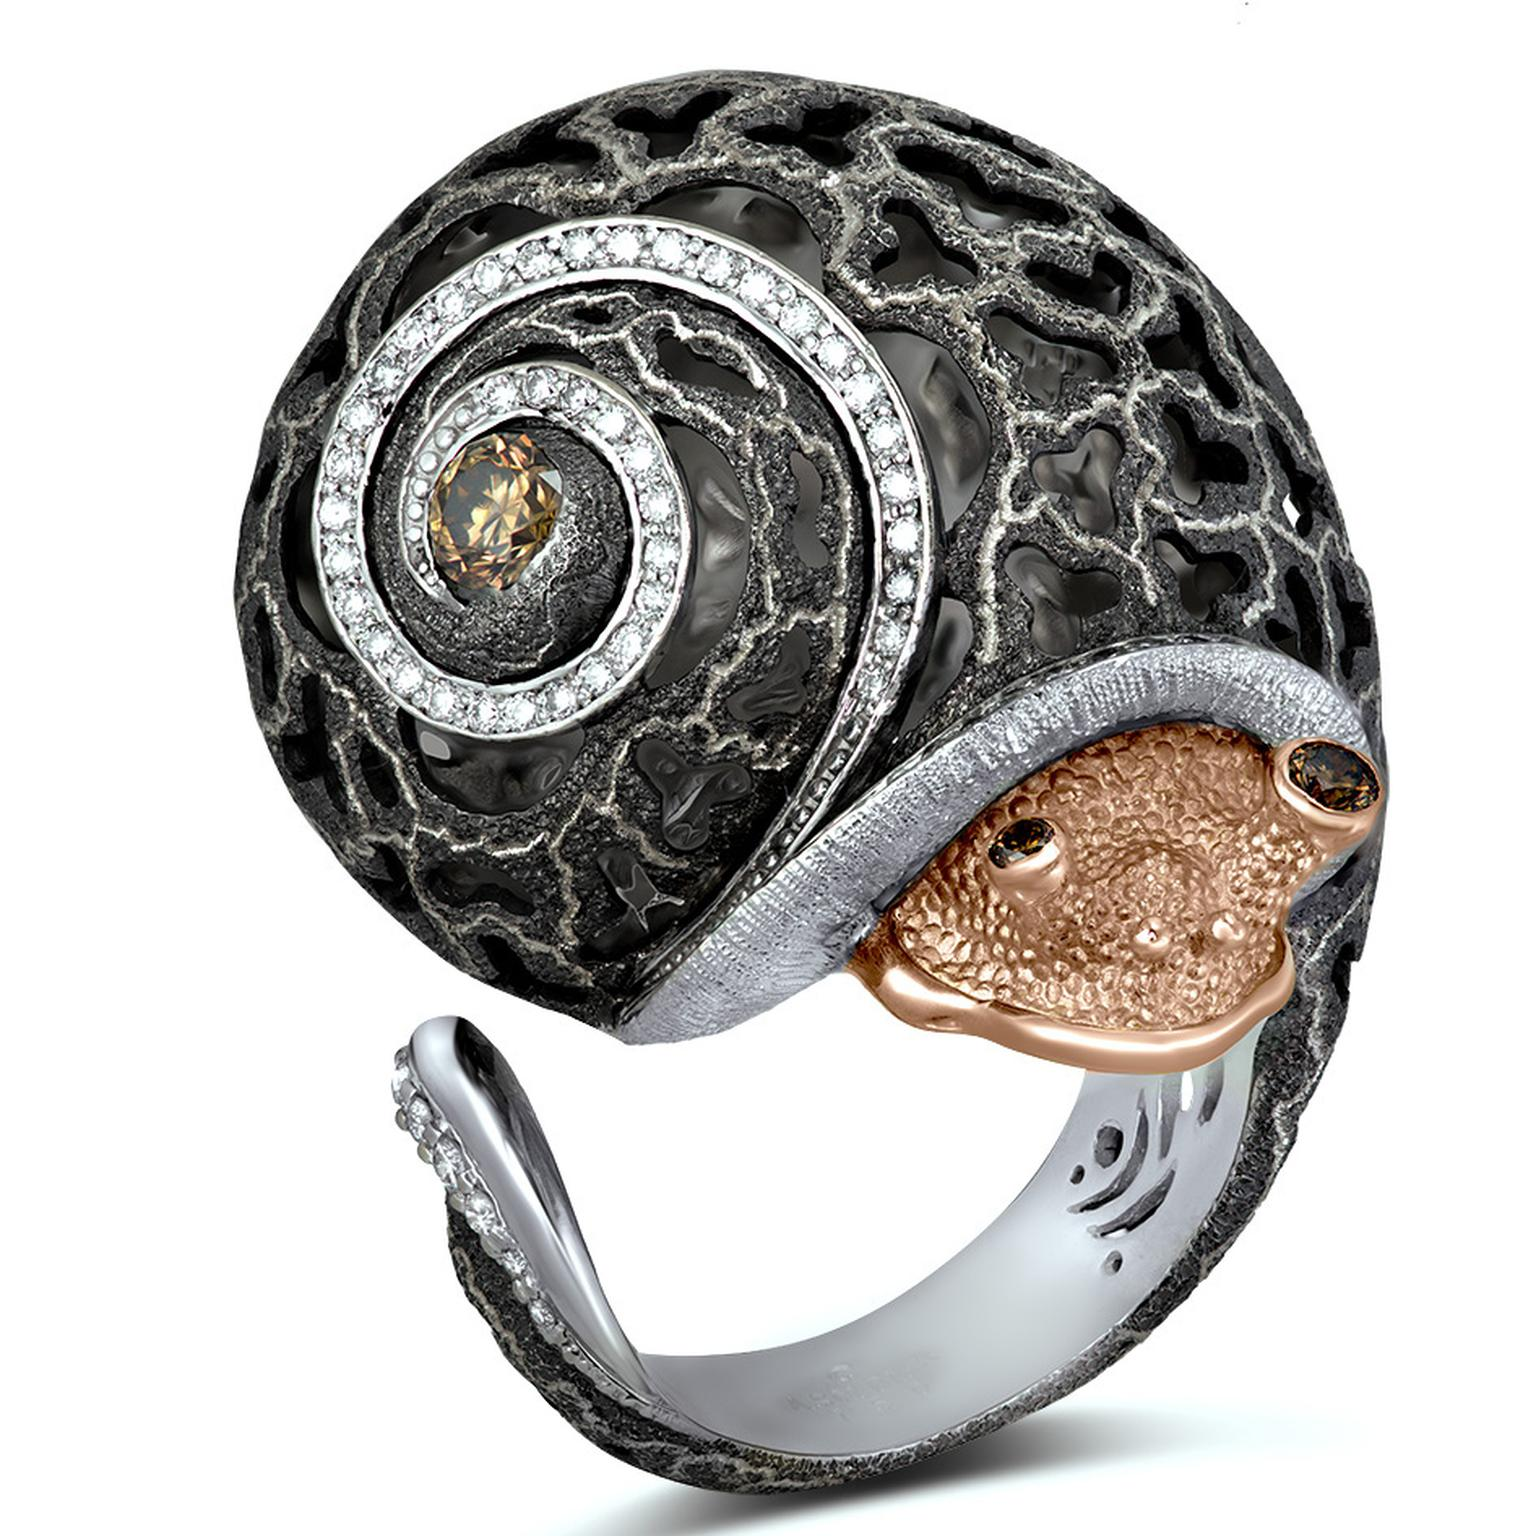 Codi The Snail Ring from Alex Soldier